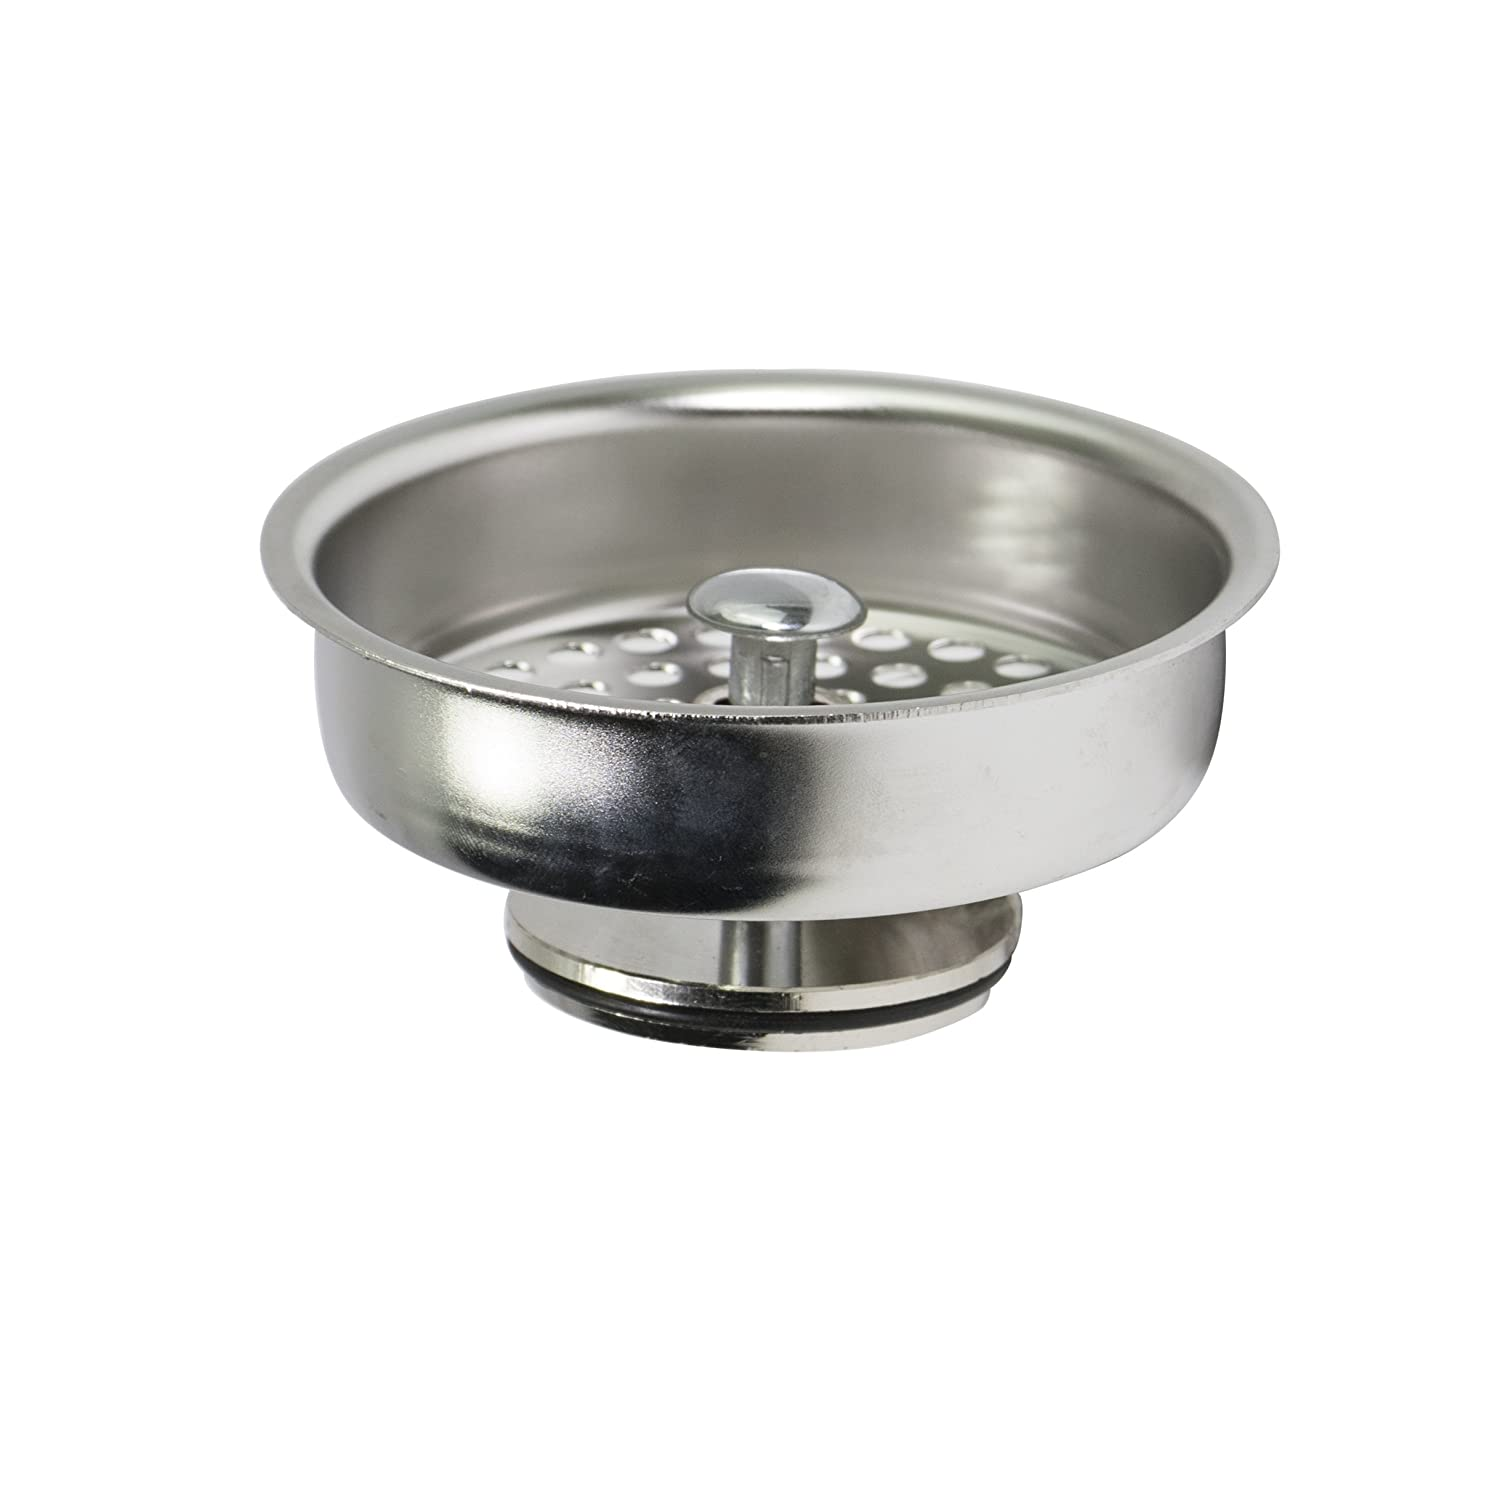 Everflow 75131 Kitchen Sink Basket Strainer Replacement for Kohler Style Drains Stainless Steel - With Spring Steel Stopper